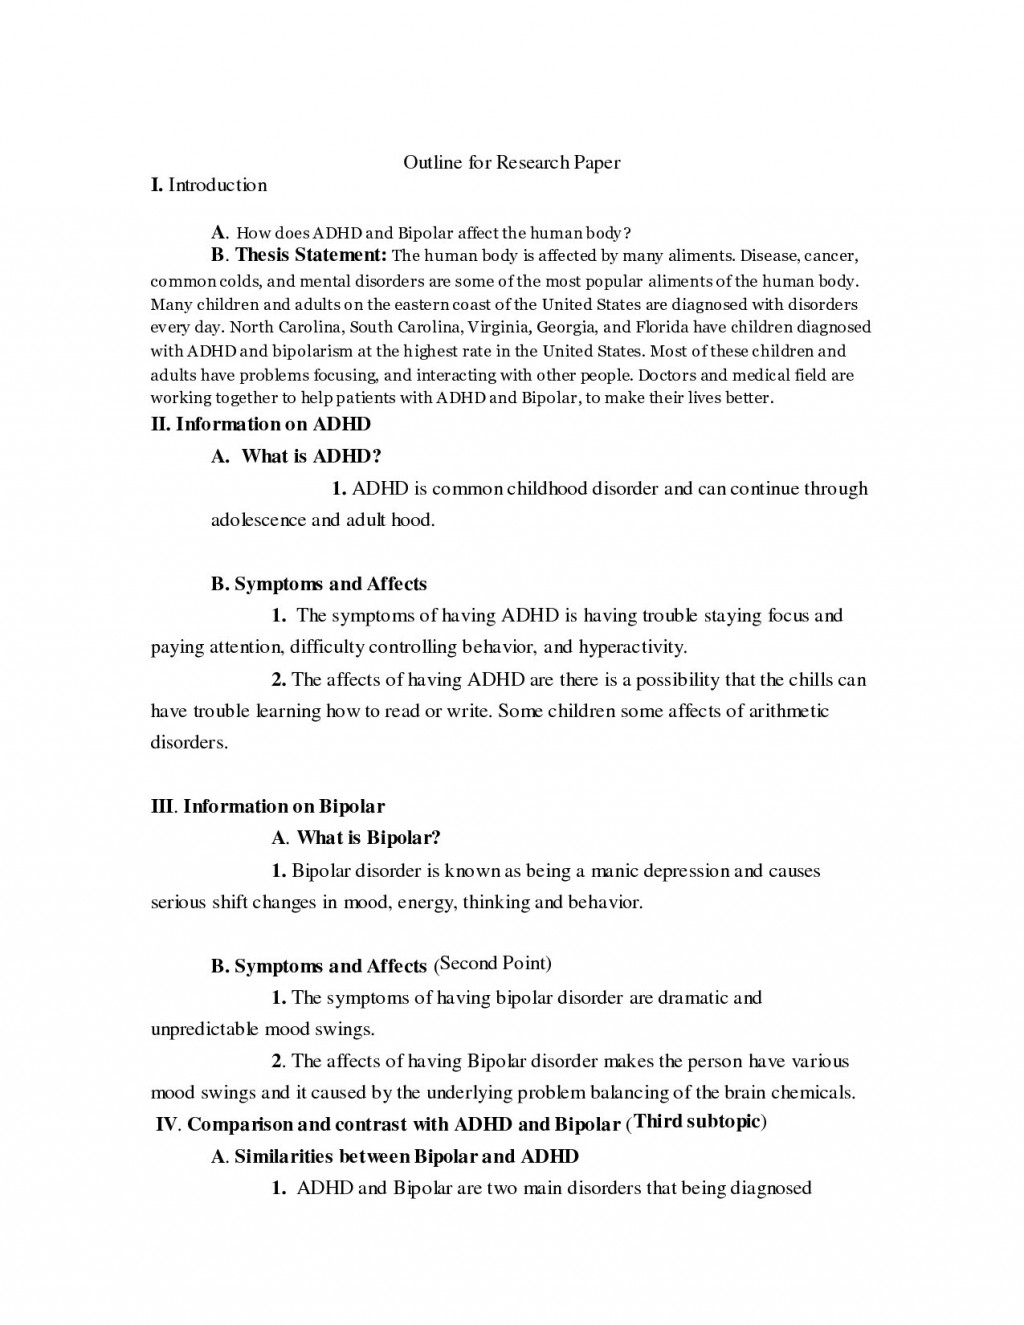 004 Thesis Statement For Bipolar Disorder Research Paper Essay L Outline On Fantastic A Depression Large